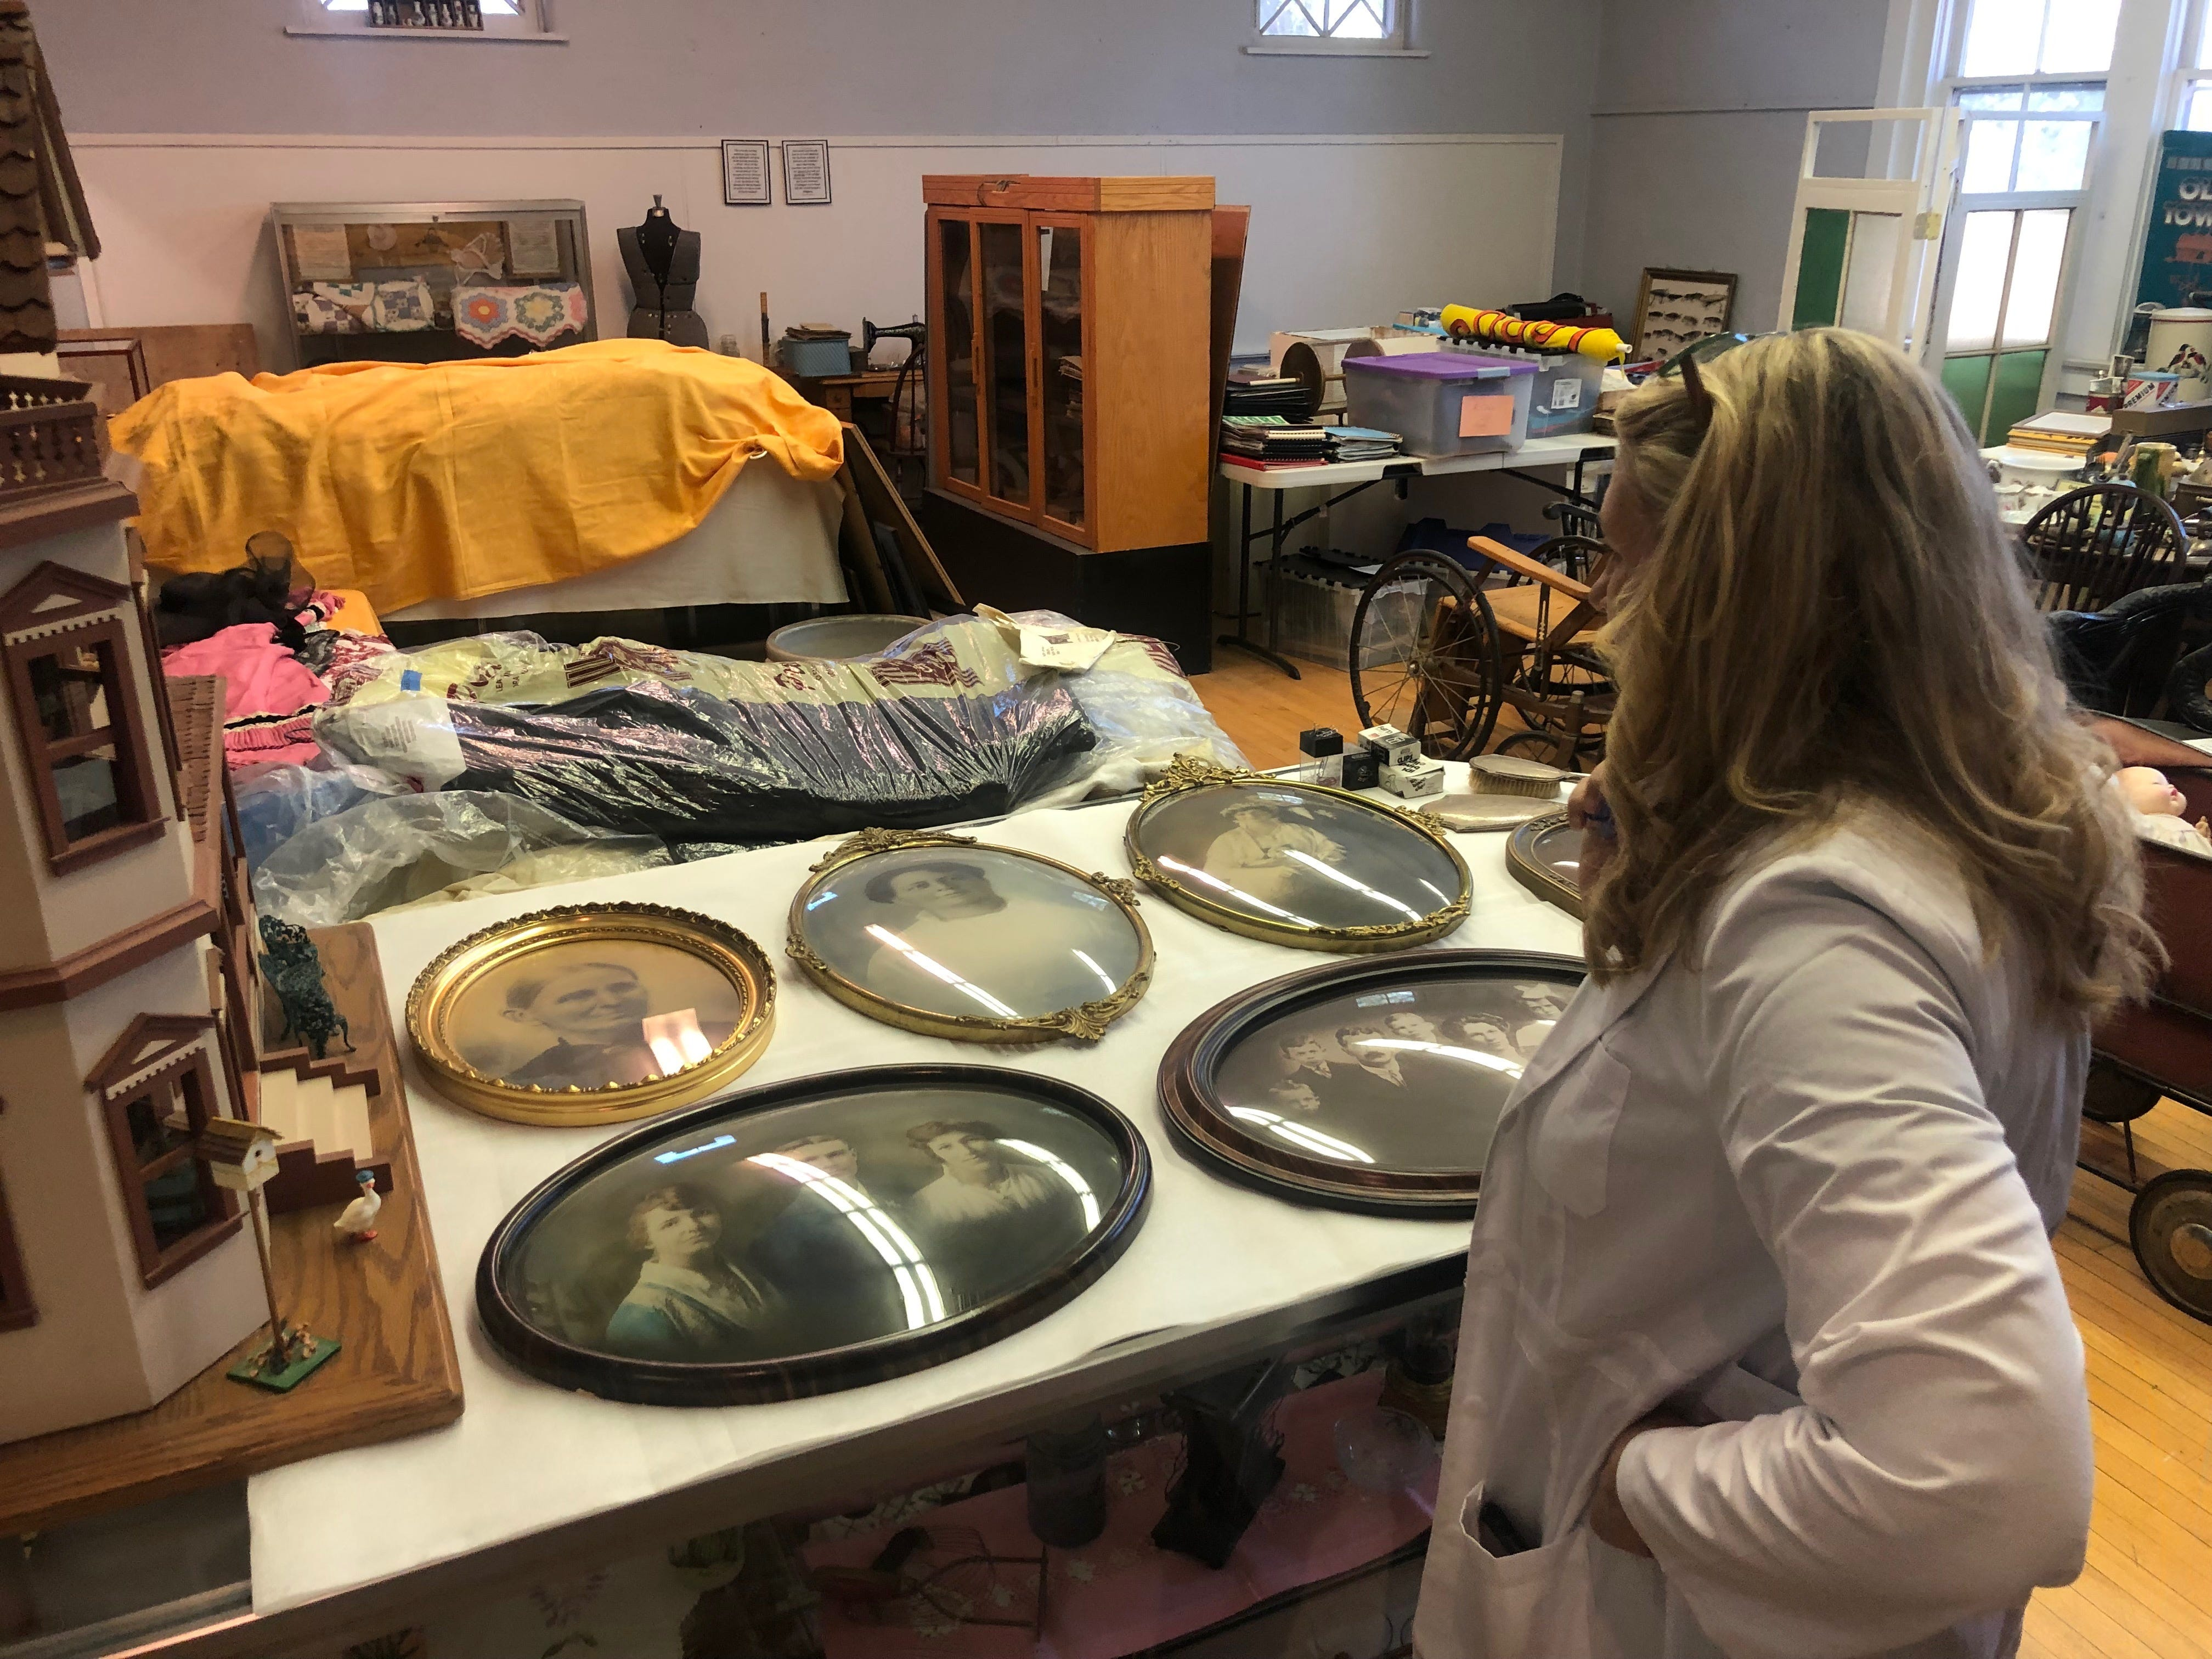 Searching for owners of artifacts after Peoria museum shutters